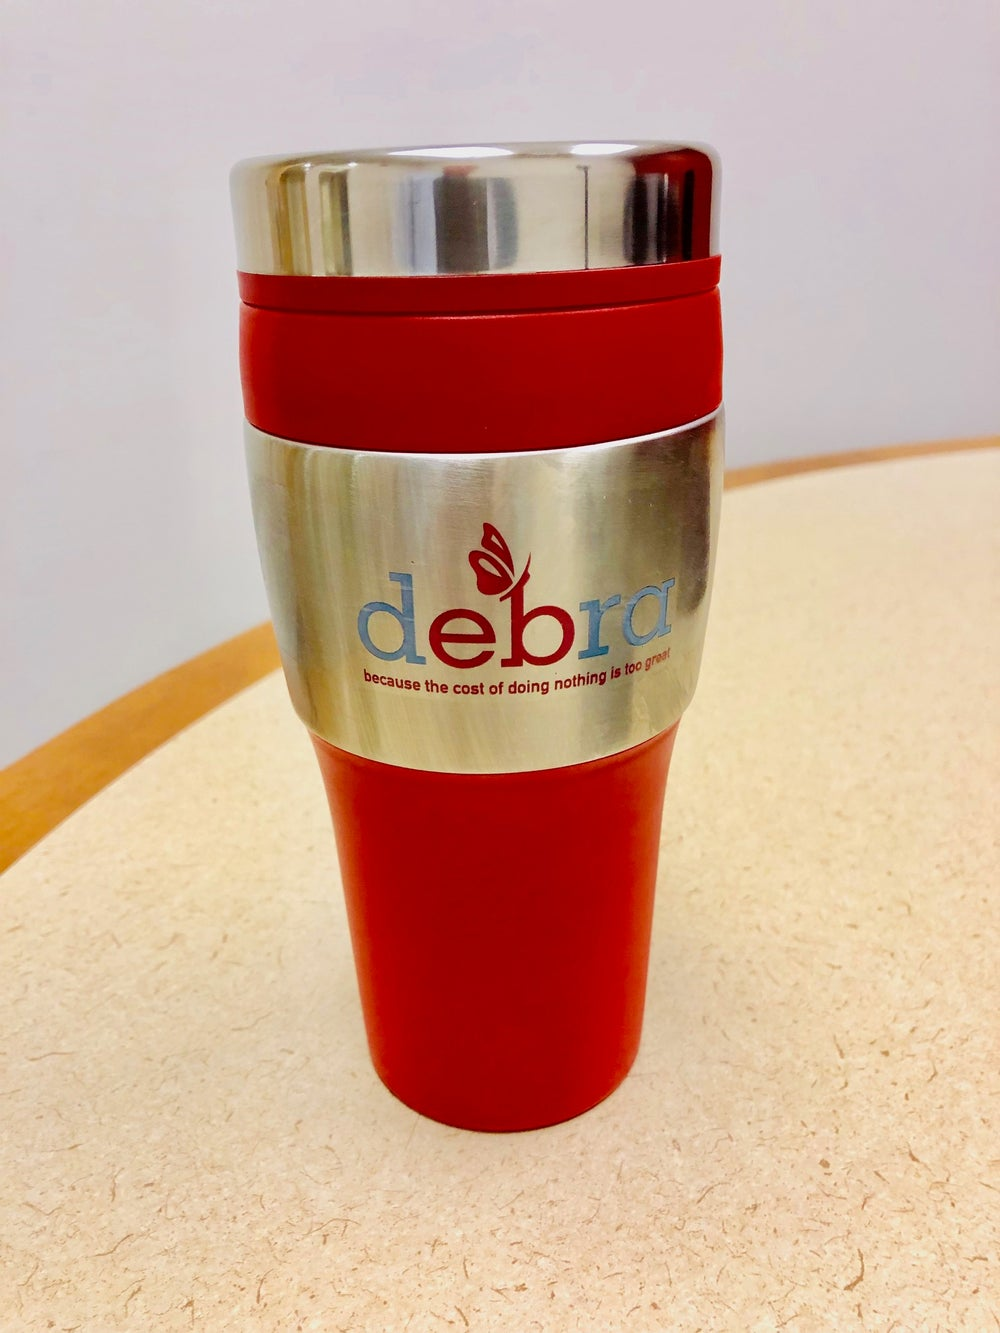 Image of debra thermal mug